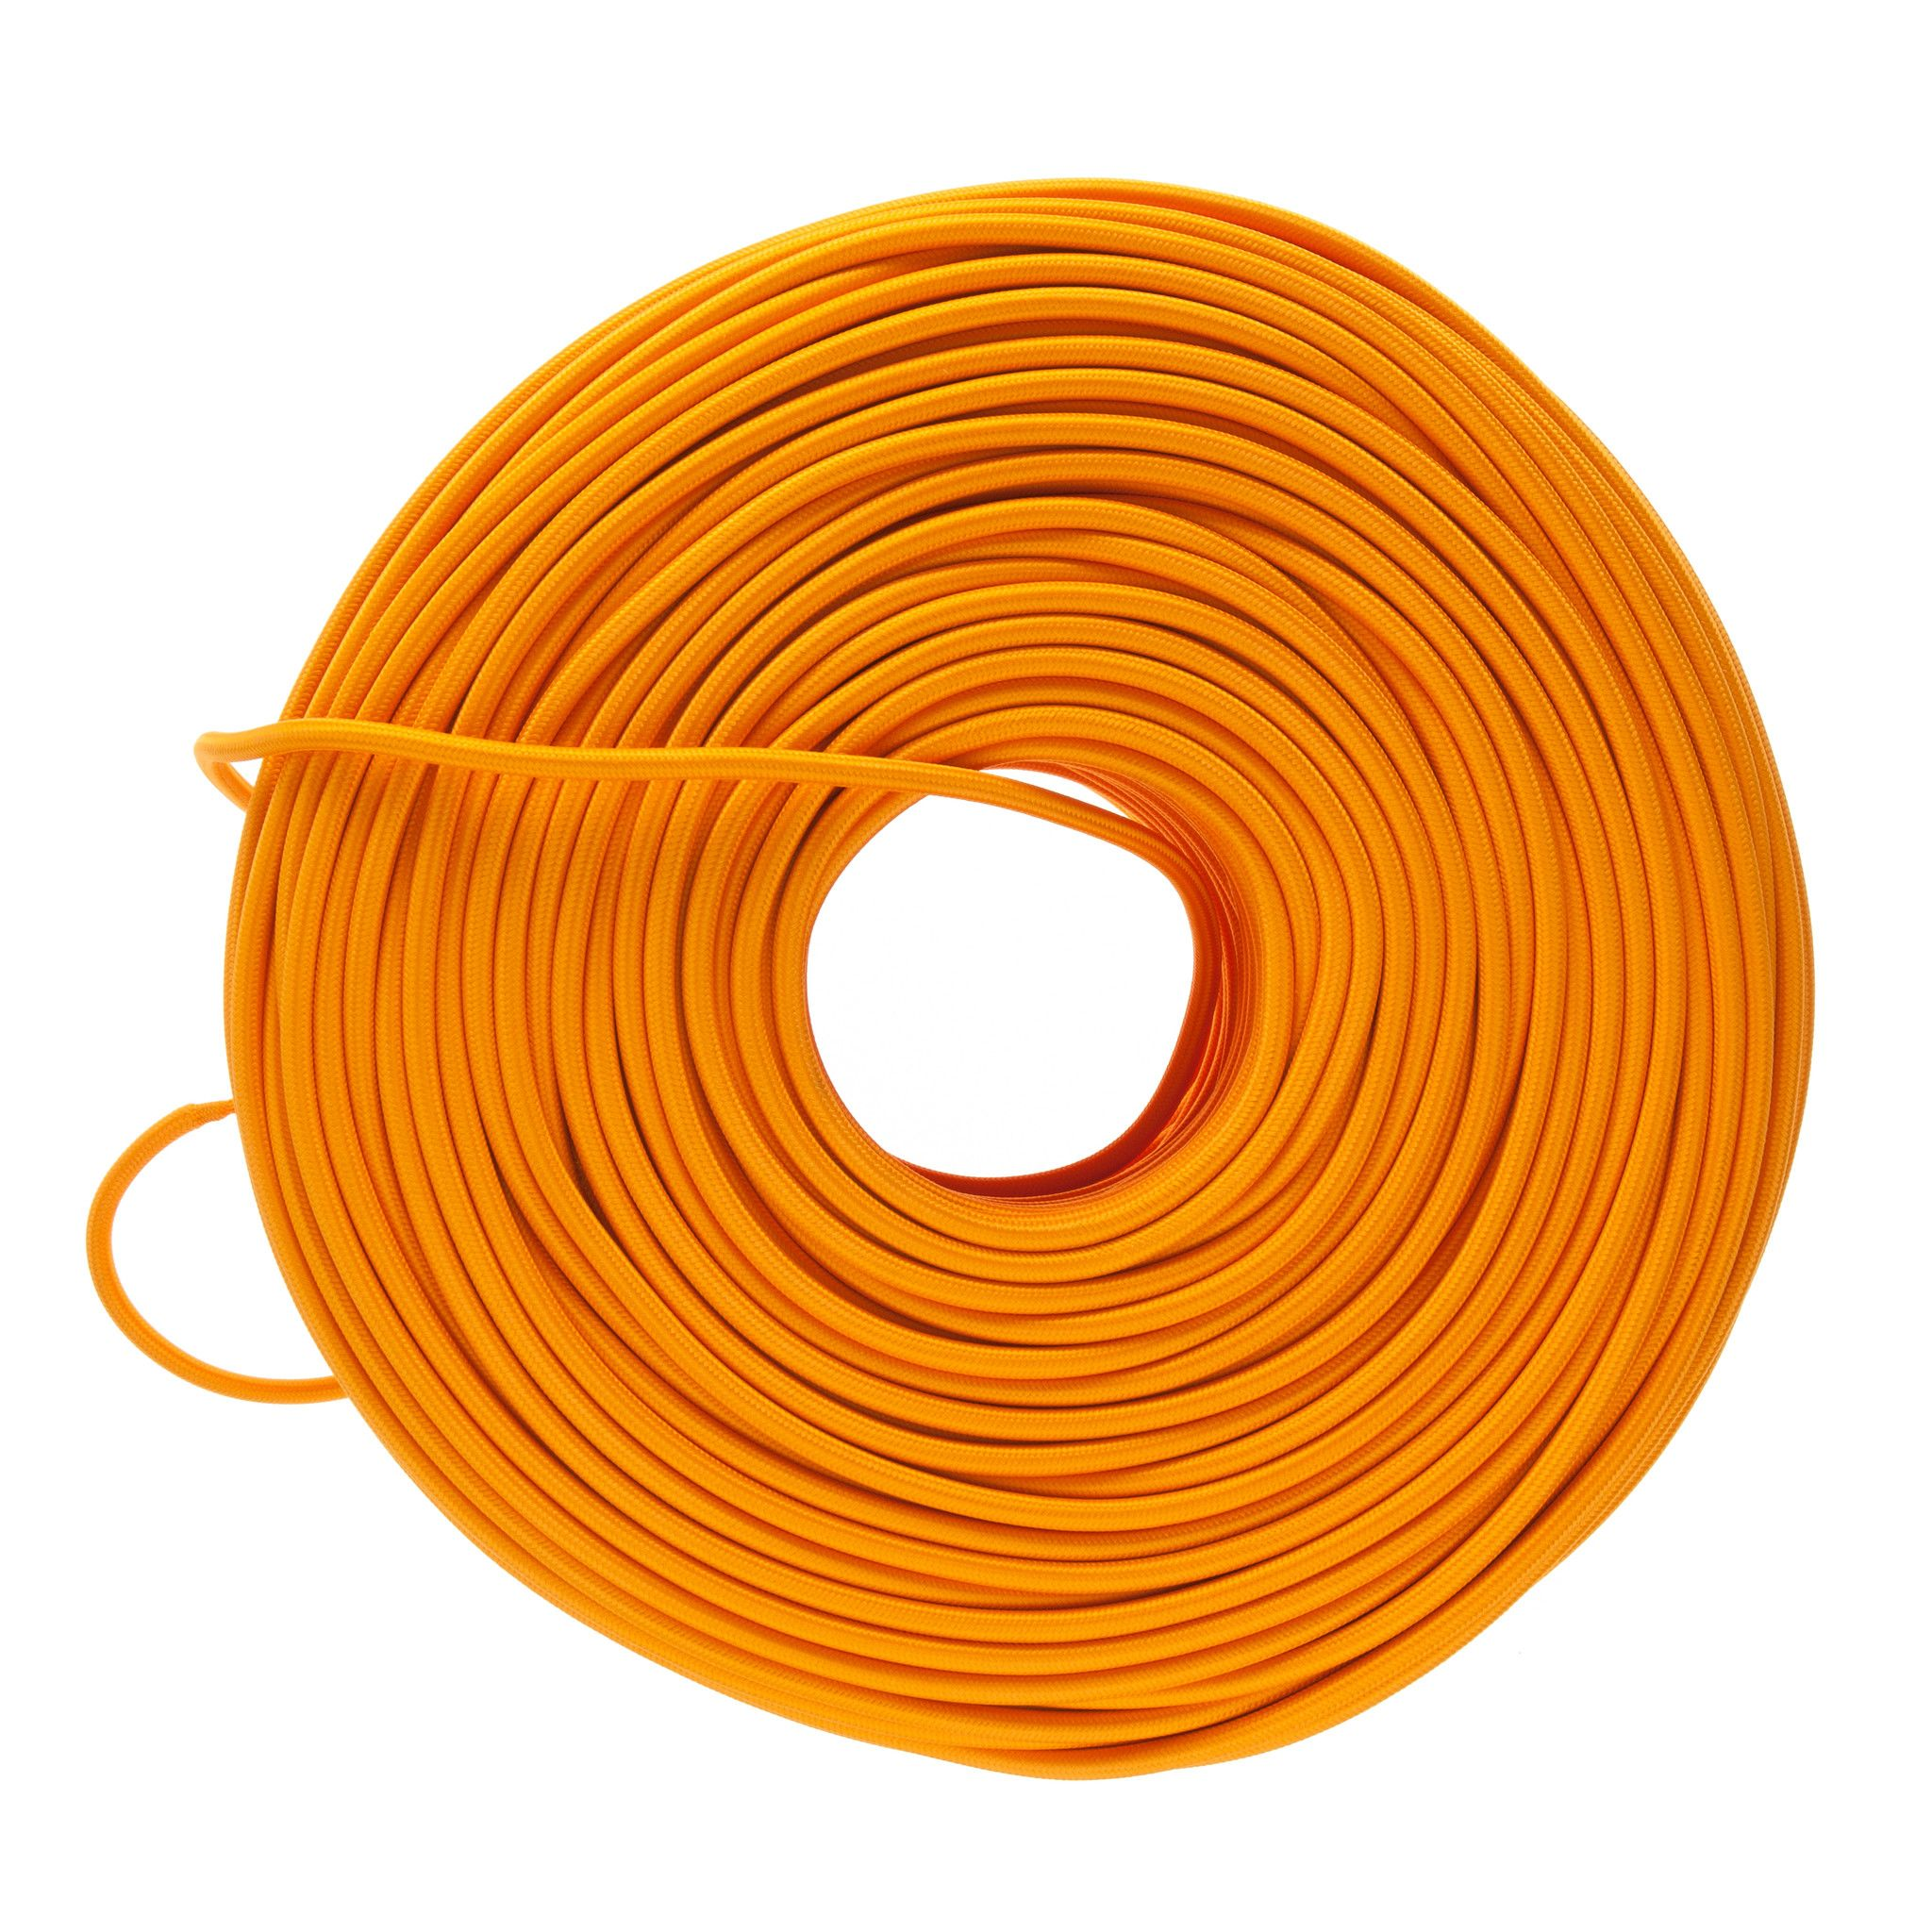 So Cord Listed 3 4 5 Conductor So Sow Cable Flexible Cored: DIY Fabric Wire By The Foot - Tangerine